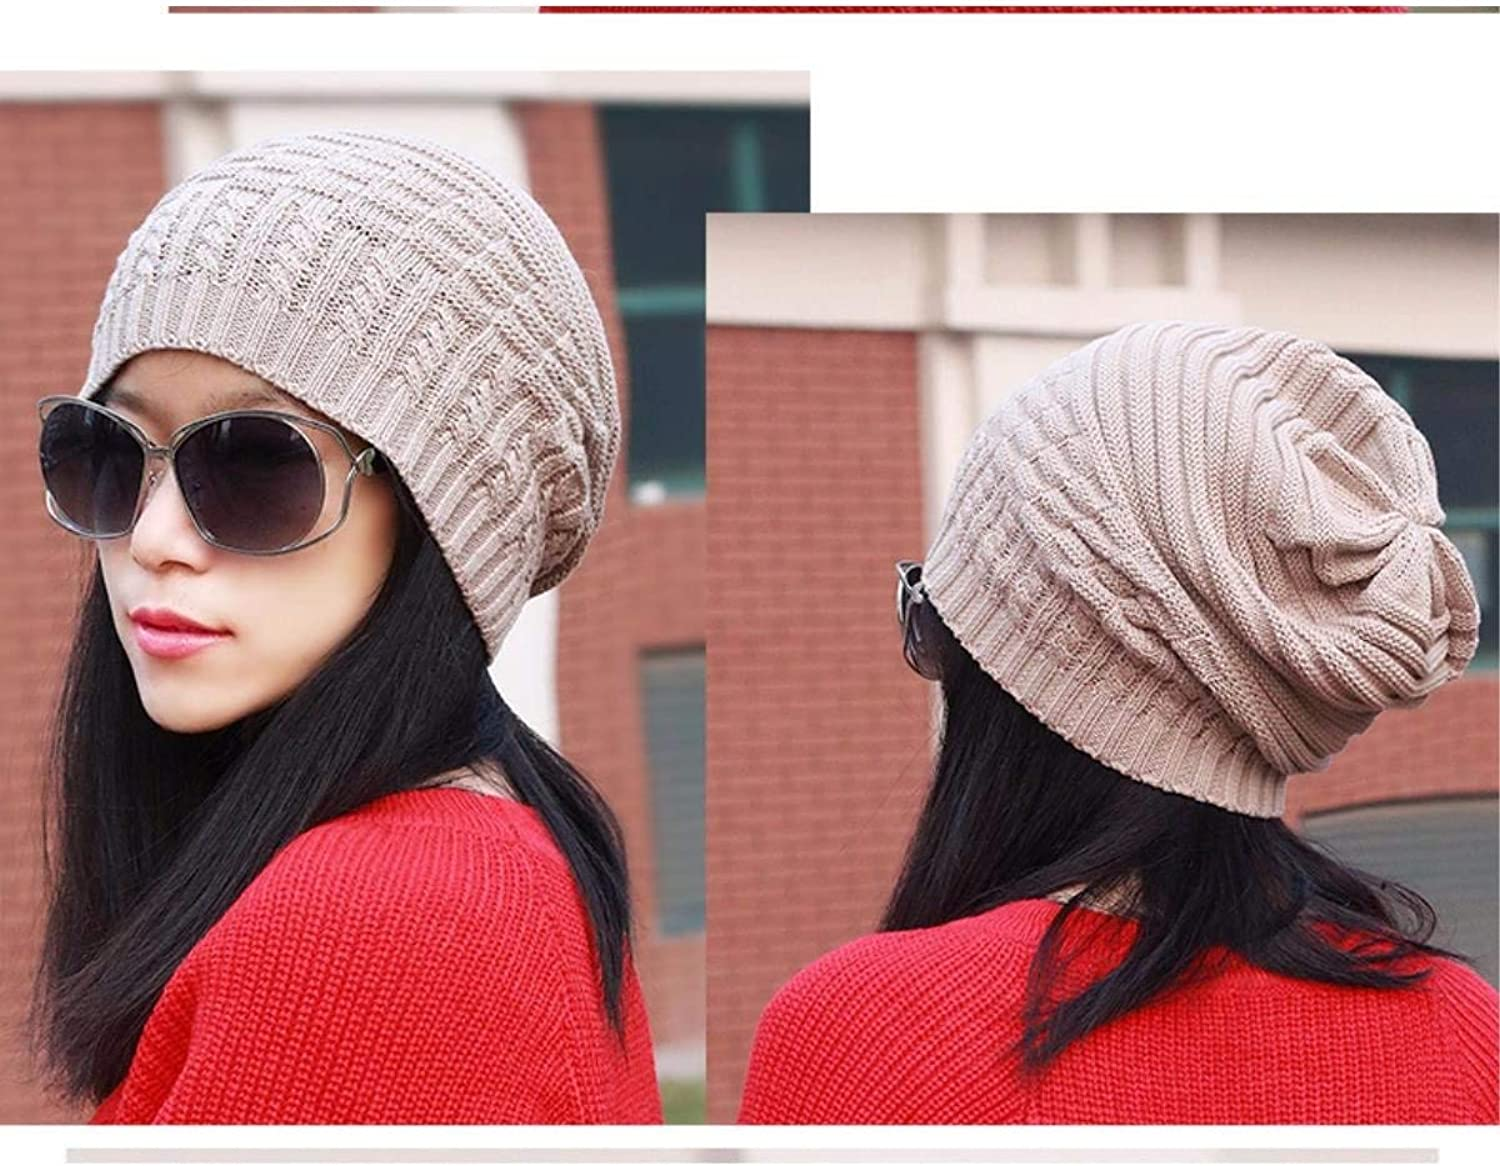 Chuiqingnet Hat female autumn winter knitting wool cap ear cap bald cap kit and a couple of new header